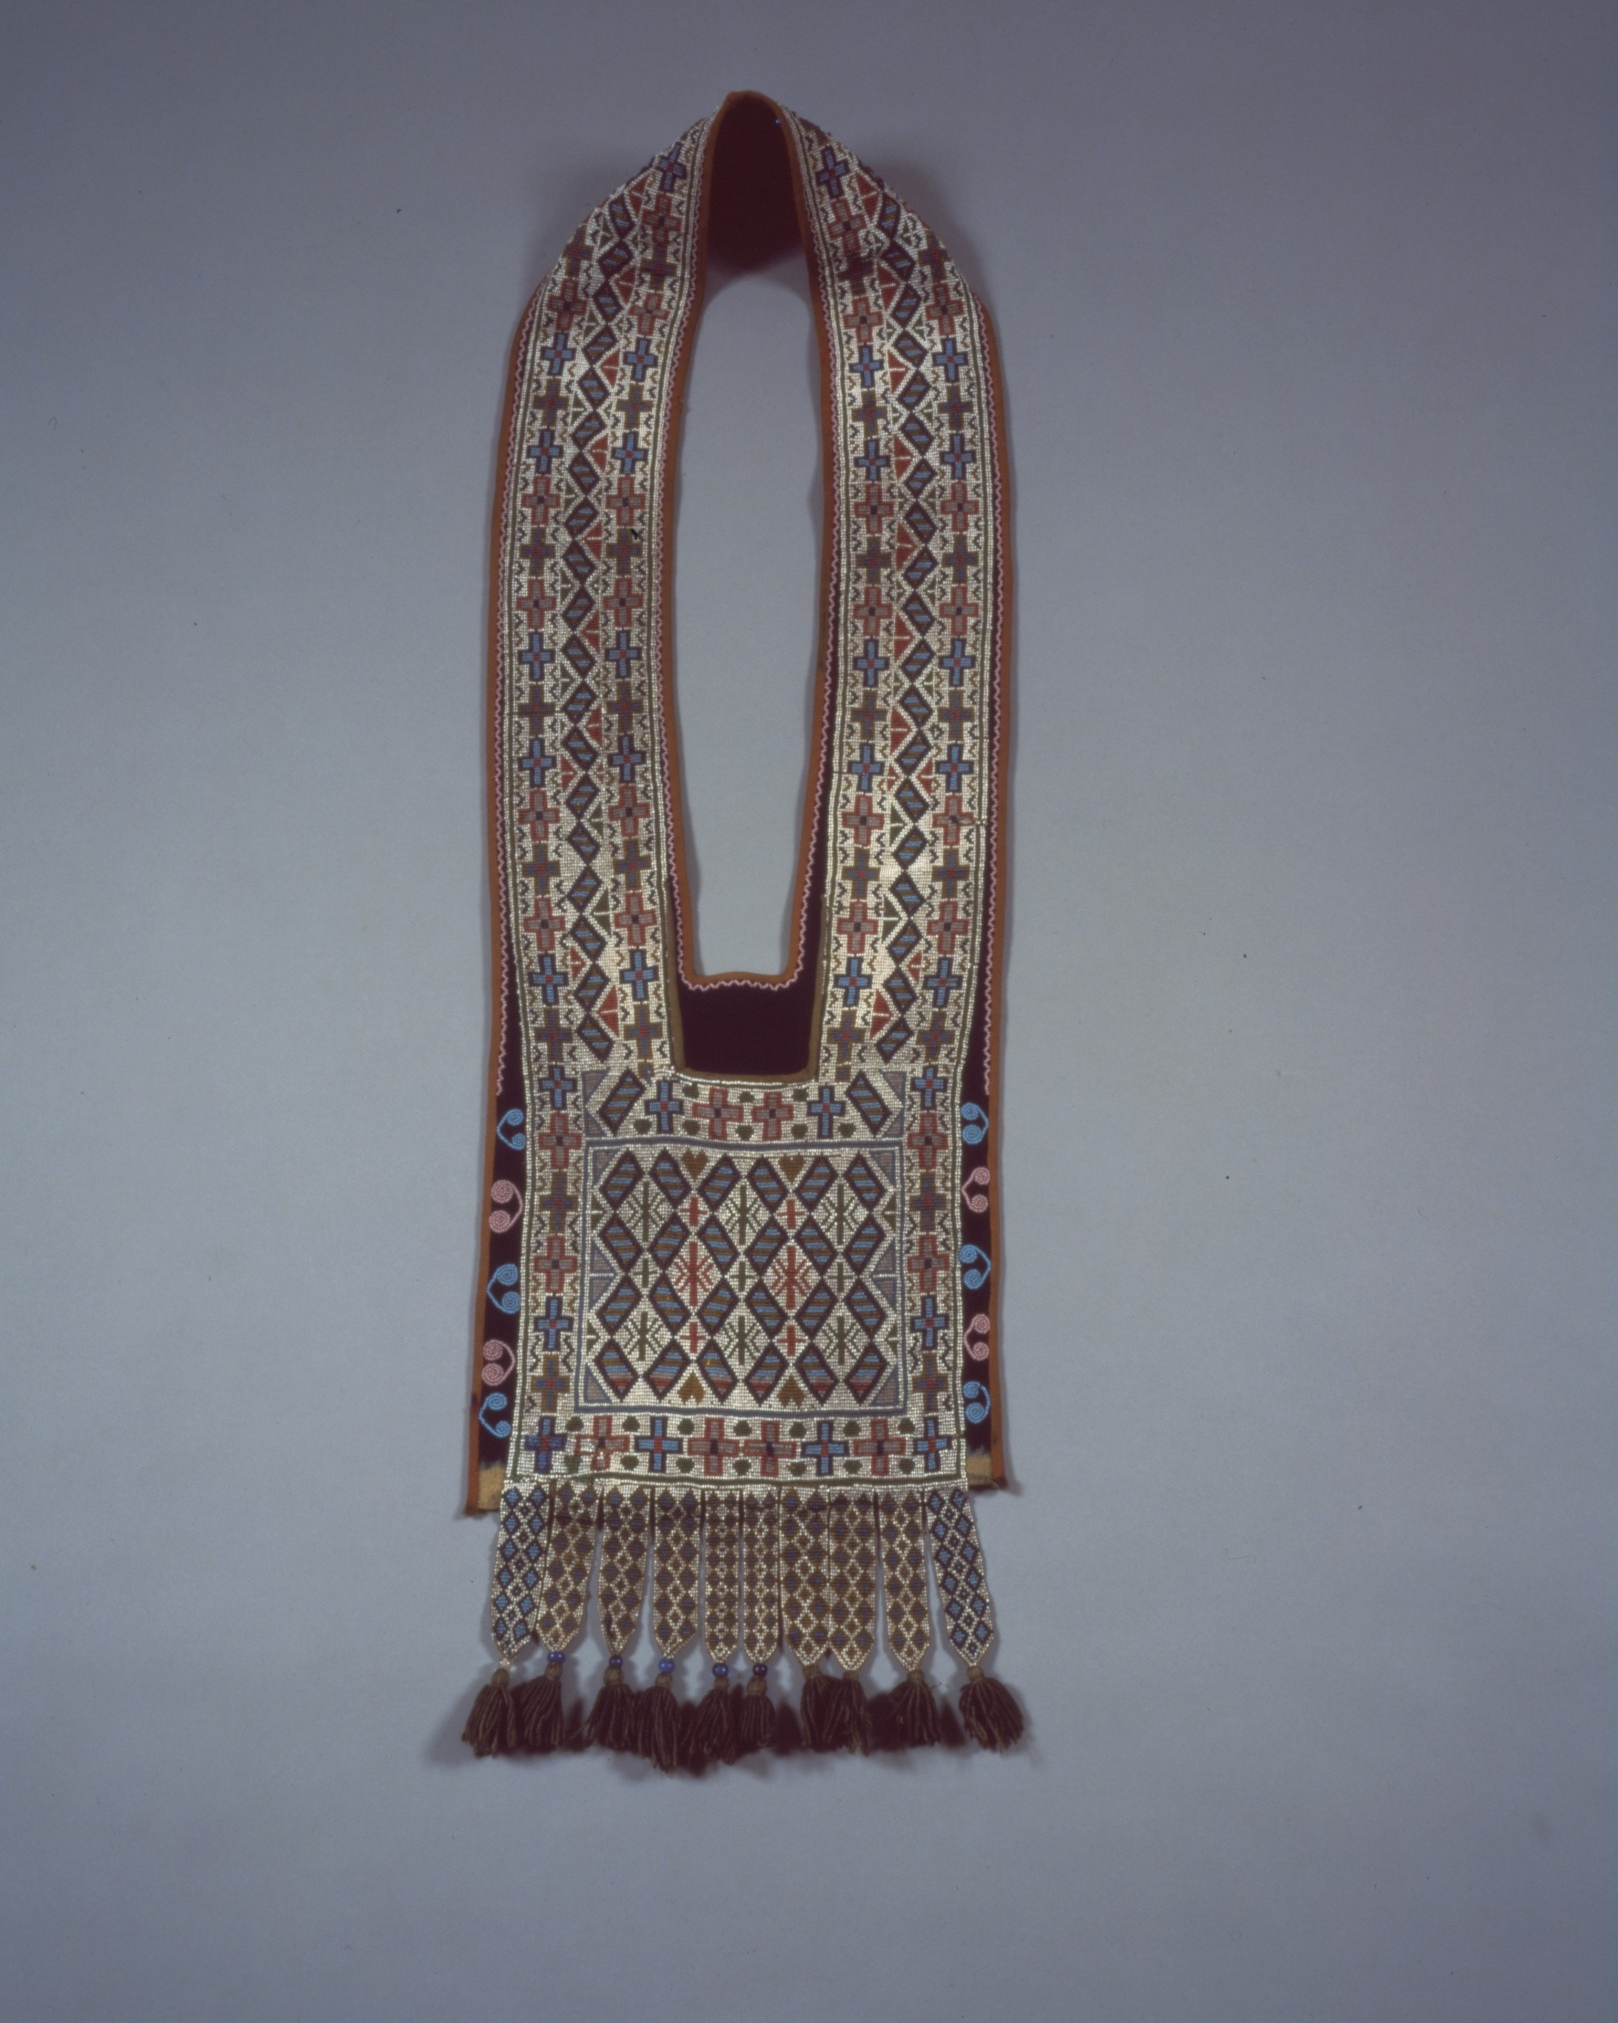 Potawatomi, bandolier bag, about 1890. Red trade cloth; cotton print; and white, green, black, red, pumpkin, and blue-gray glass beads, 33 7/16 × 12 3/16 in. Hood Museum of Art, Dartmouth College: Bequest of Frank C. and Clara G. Churchill; 46.17.9843.